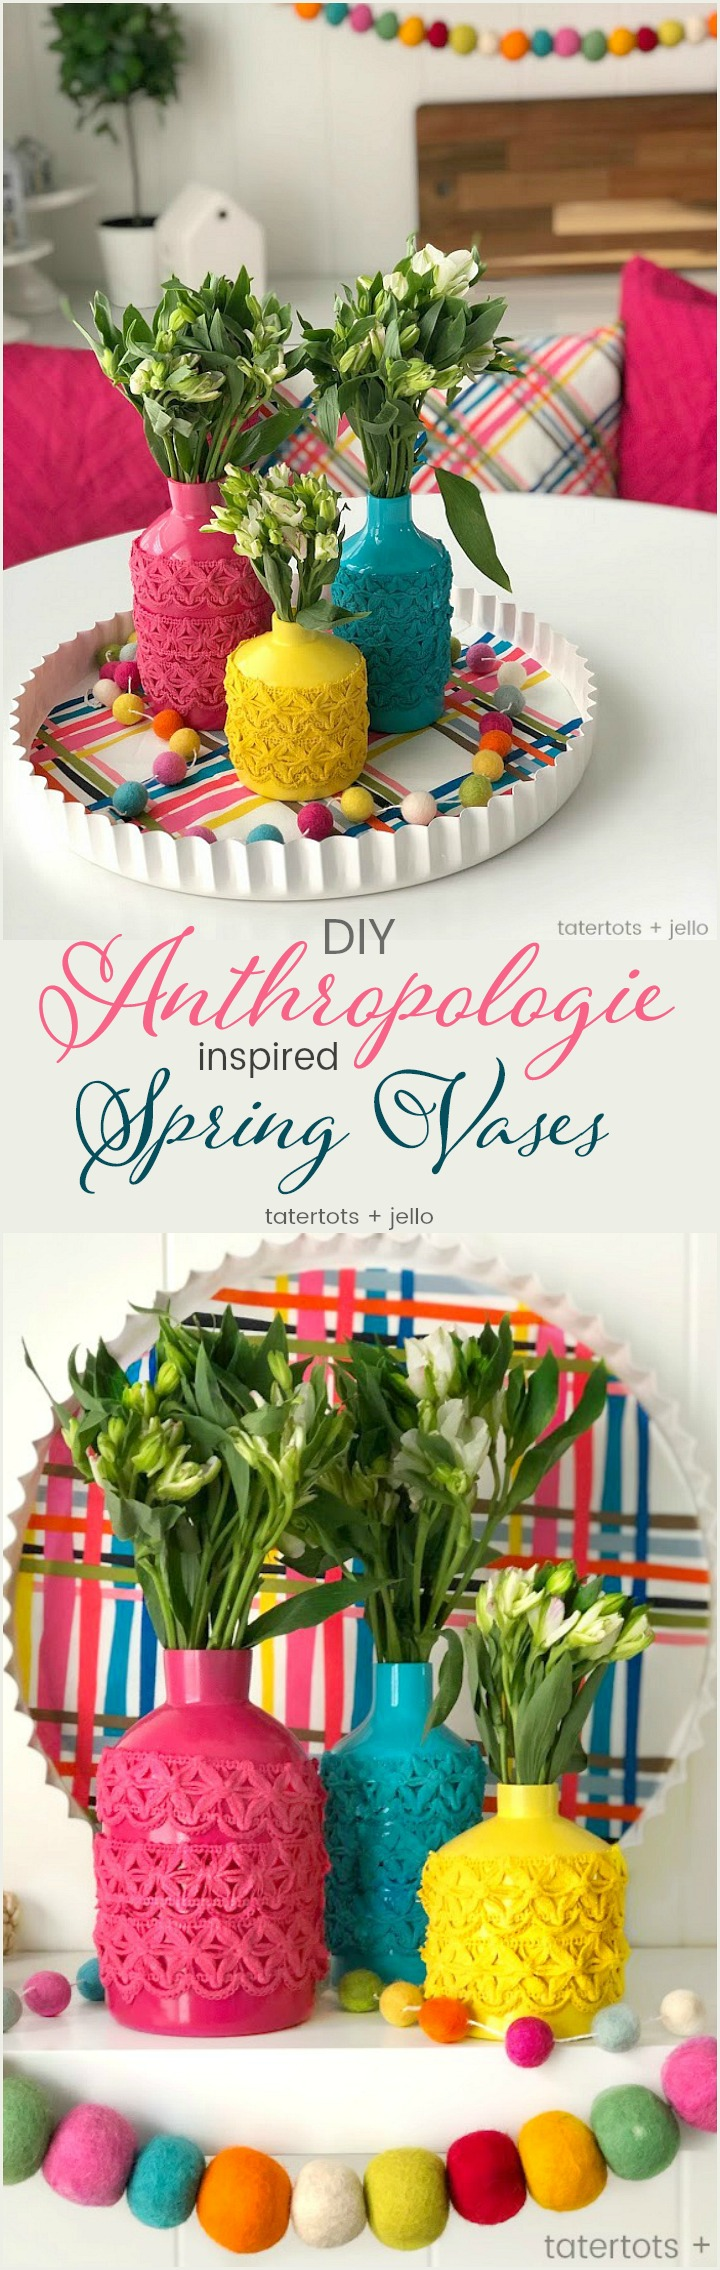 Anthropologie-Inspired Colorful Spring Vases DIY. Take simple jars, add spray paint and trim to create a beautiful centerpiece for a fraction of the cost!